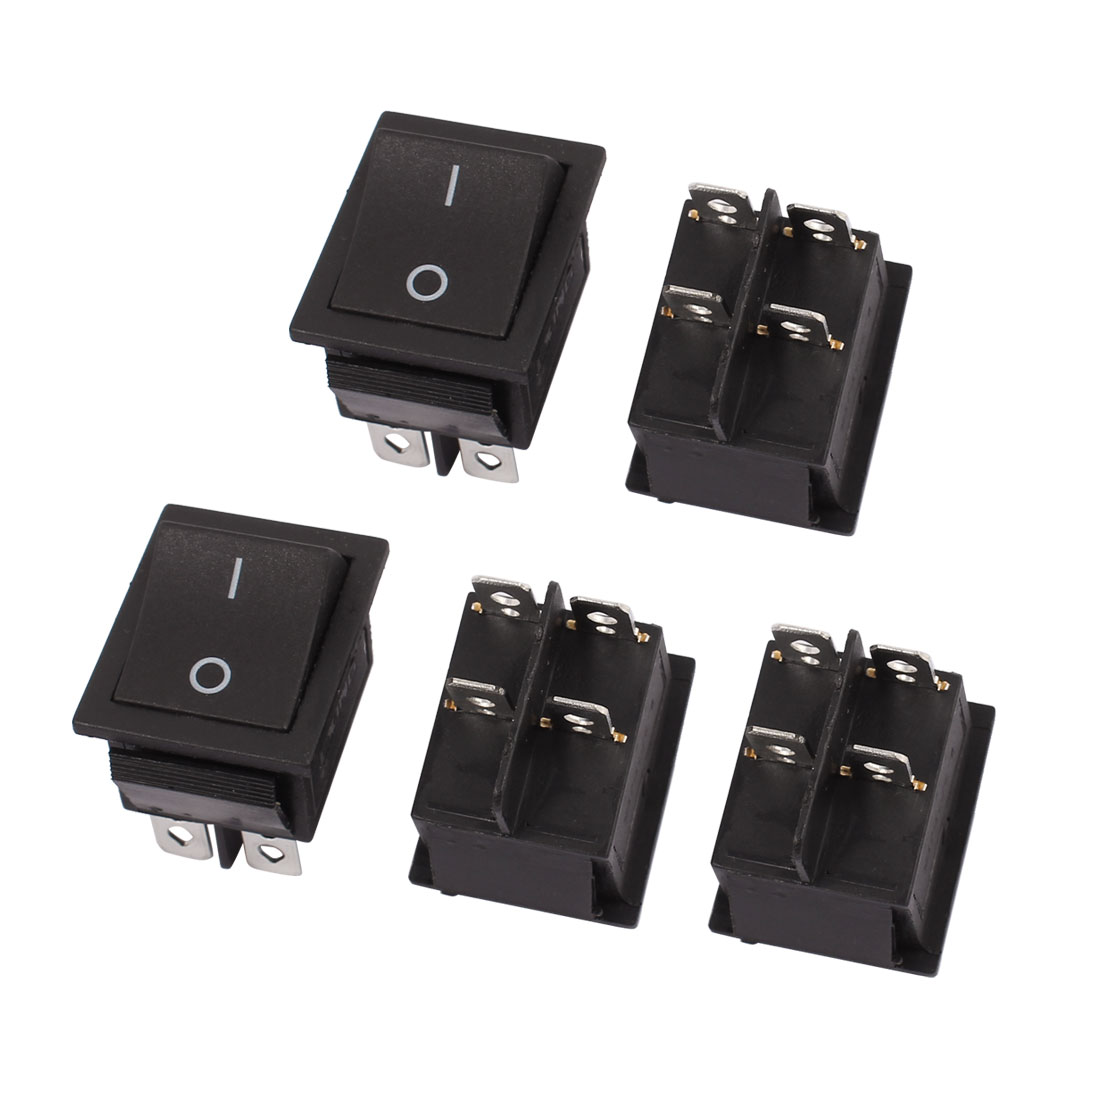 4 Pcs AC 250V 16A 125V 20A 4 Pin DPST Black On/OFF Rocker Switch